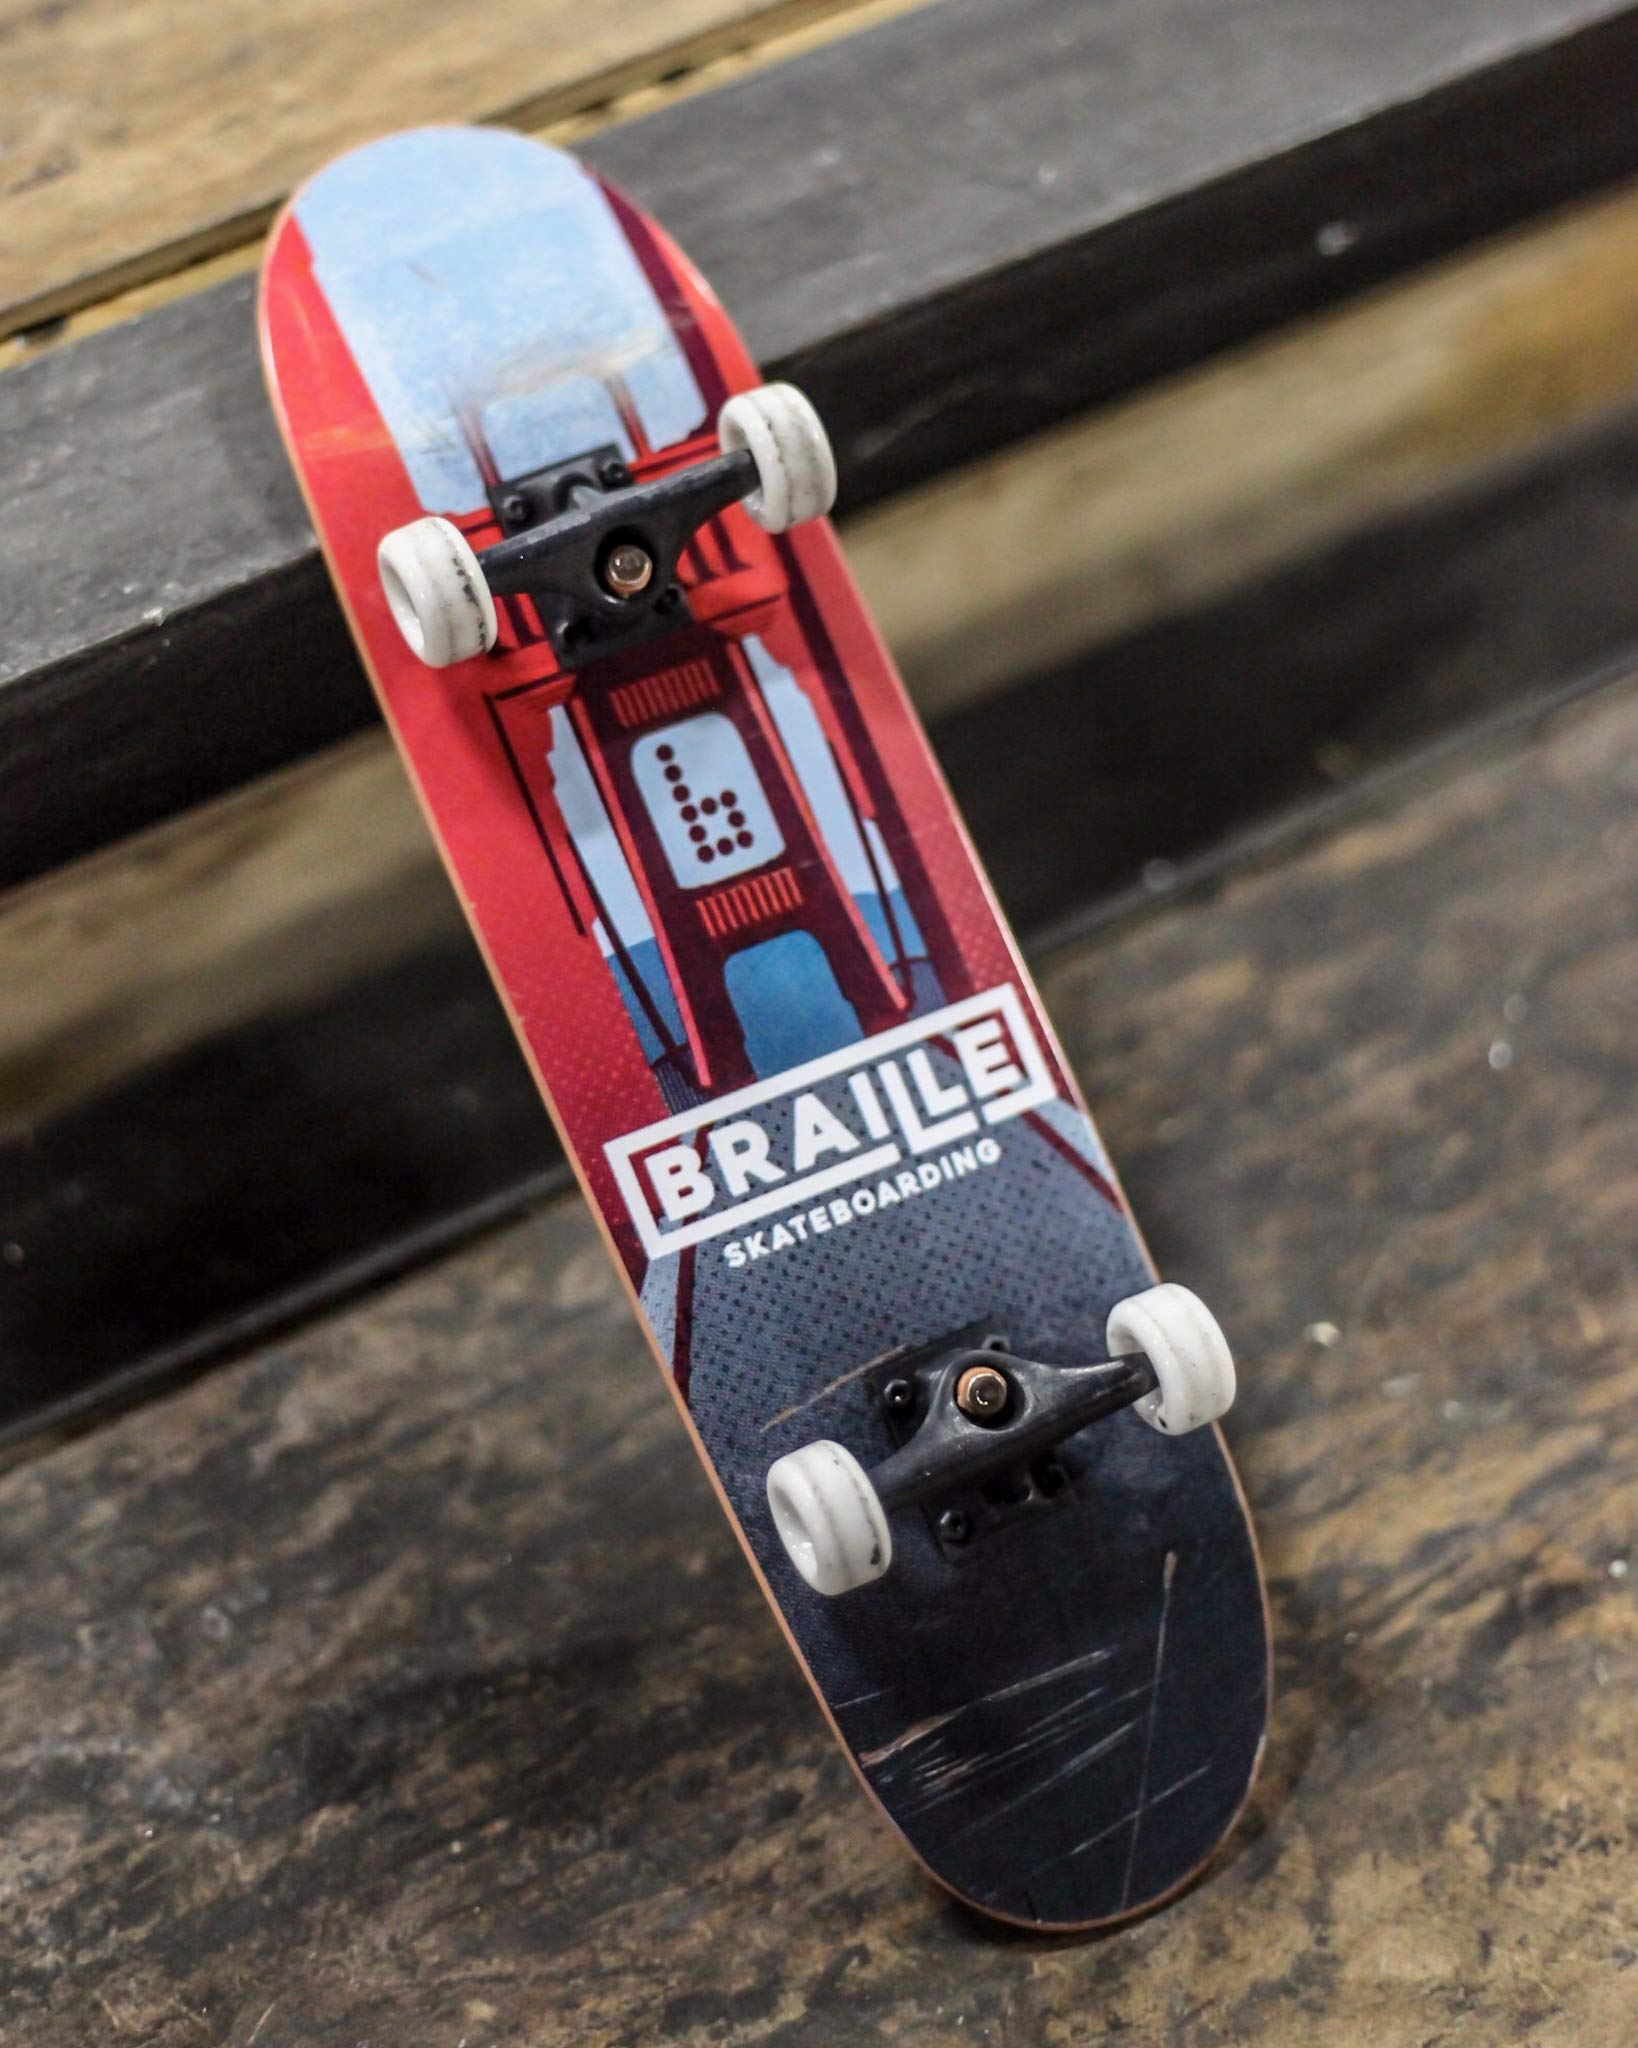 Braille Skateboarding Aaron Kyro Golden Gate 11inch Professional Hand Board. Toy Skateboard Comes with Wheels, Trucks, Hardware and Tools. Real Griptape. by Braille Skateboarding (Image #6)